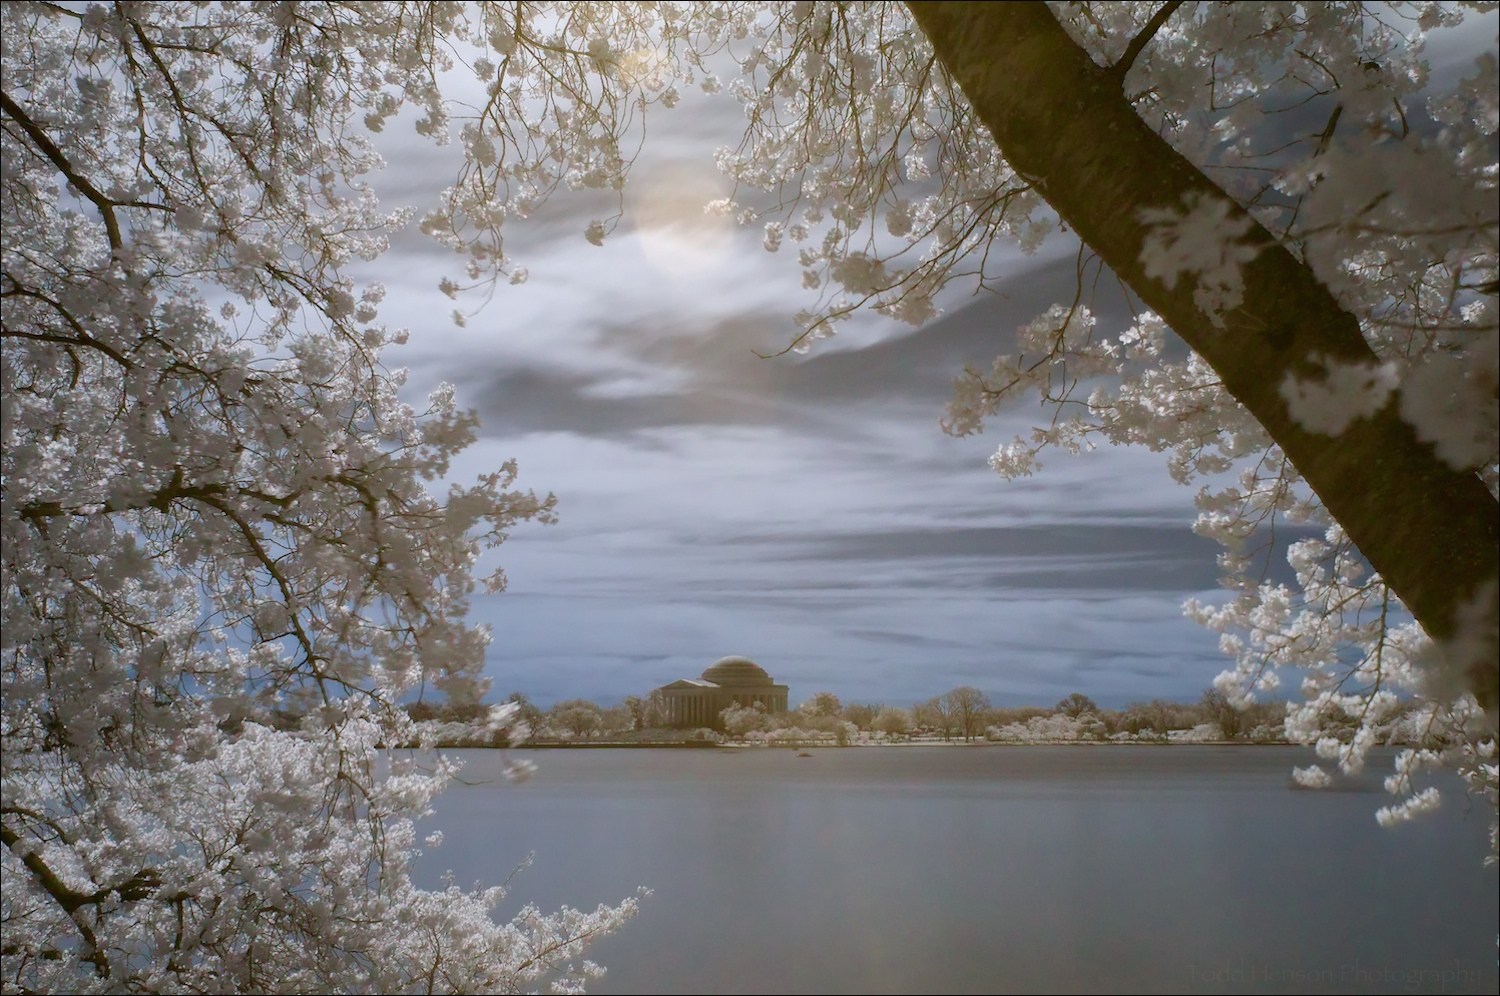 Thomas Jefferson Memorial through cherry blossoms in bloom, in infrared with reversed red/blue channels, resulting in blue tones.